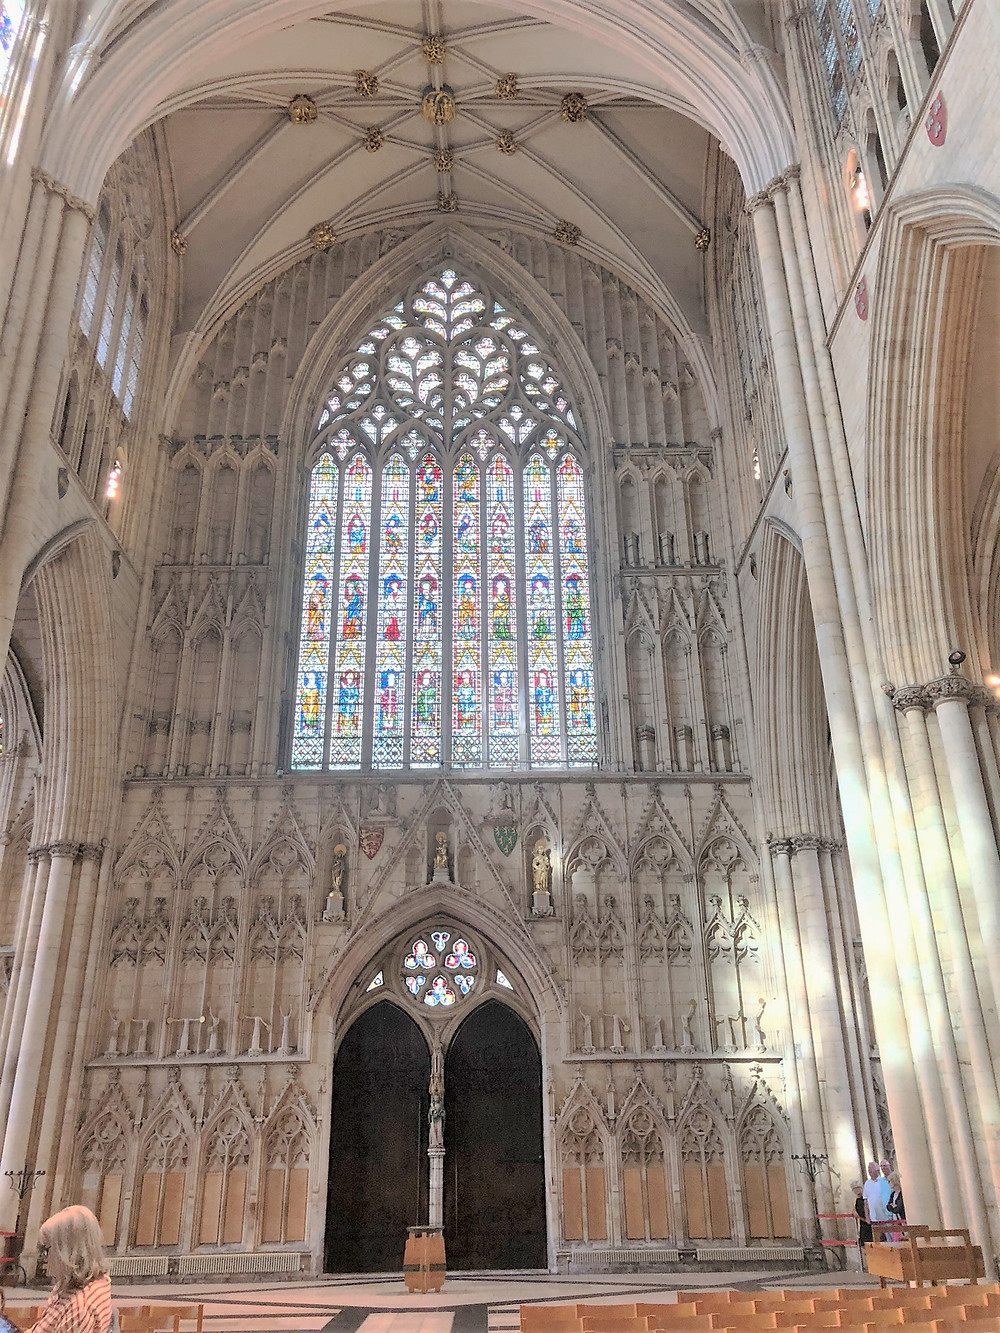 The York Minster main entrance and Great West Window completed in 1340